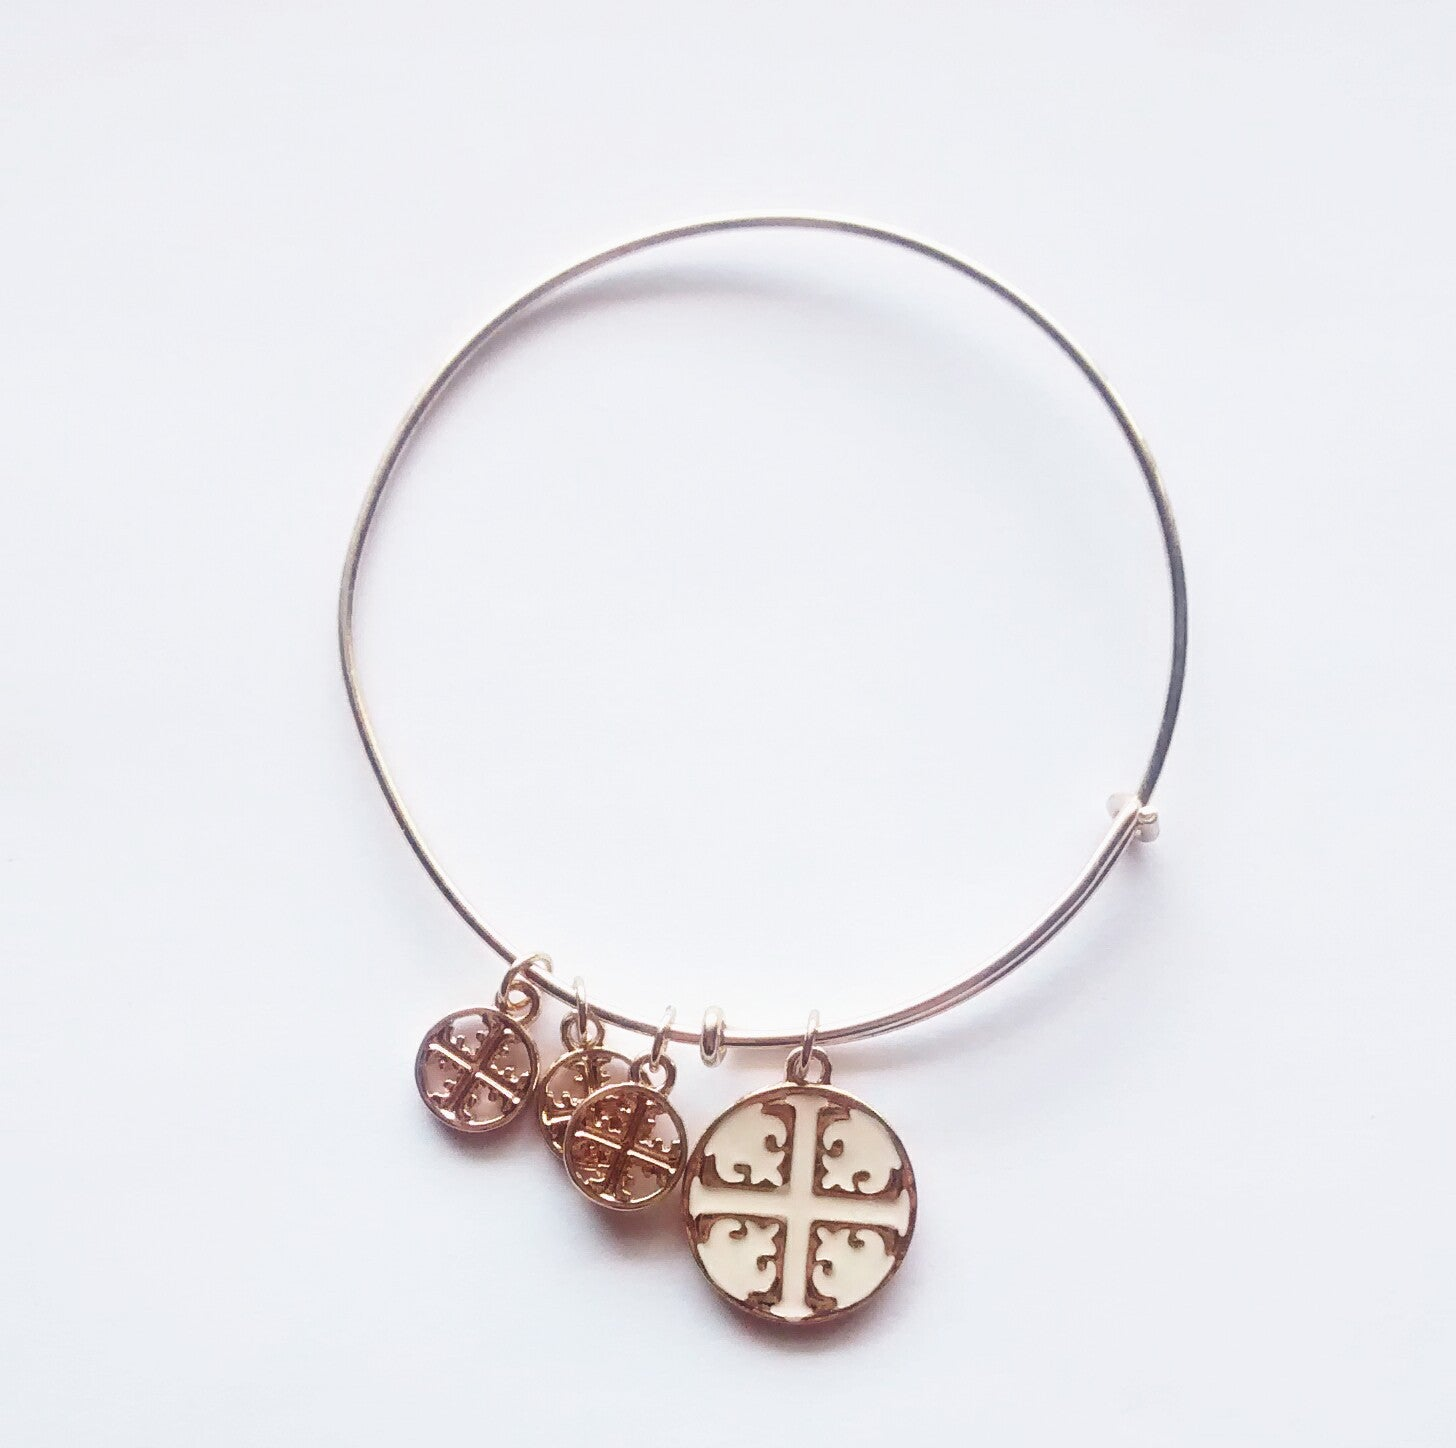 Mission Bells Charm Bracelet - Daily Chic